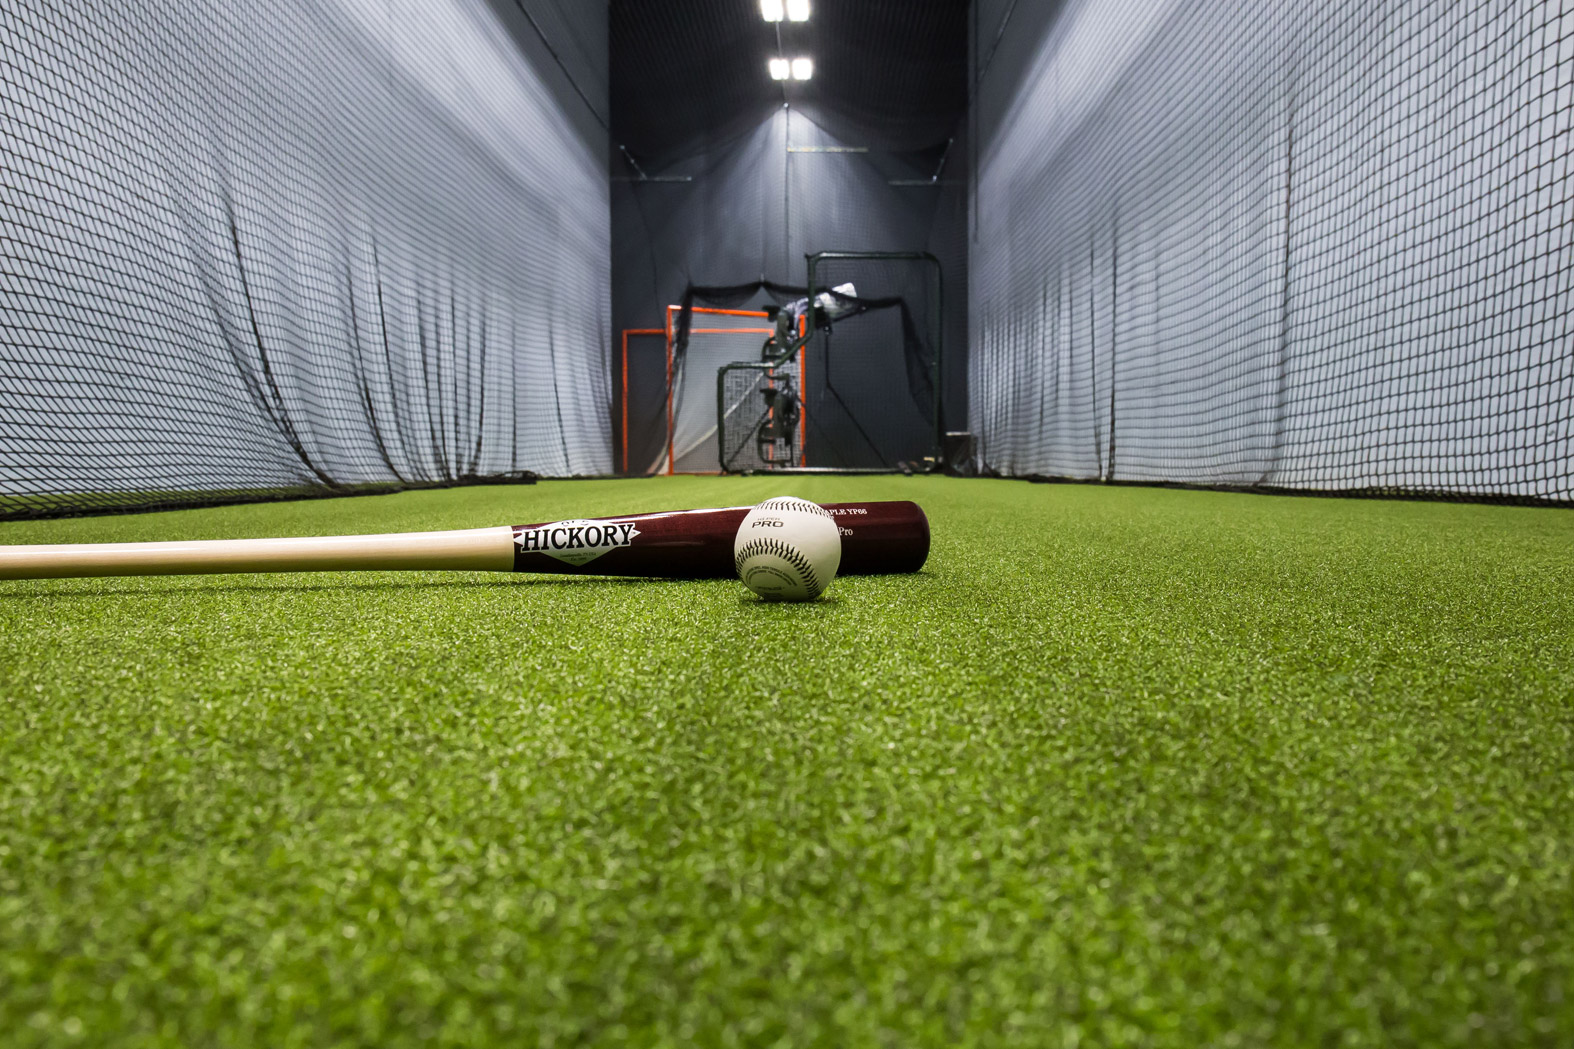 Allen_Gallery_Photos_Baseball-Batting-Cage